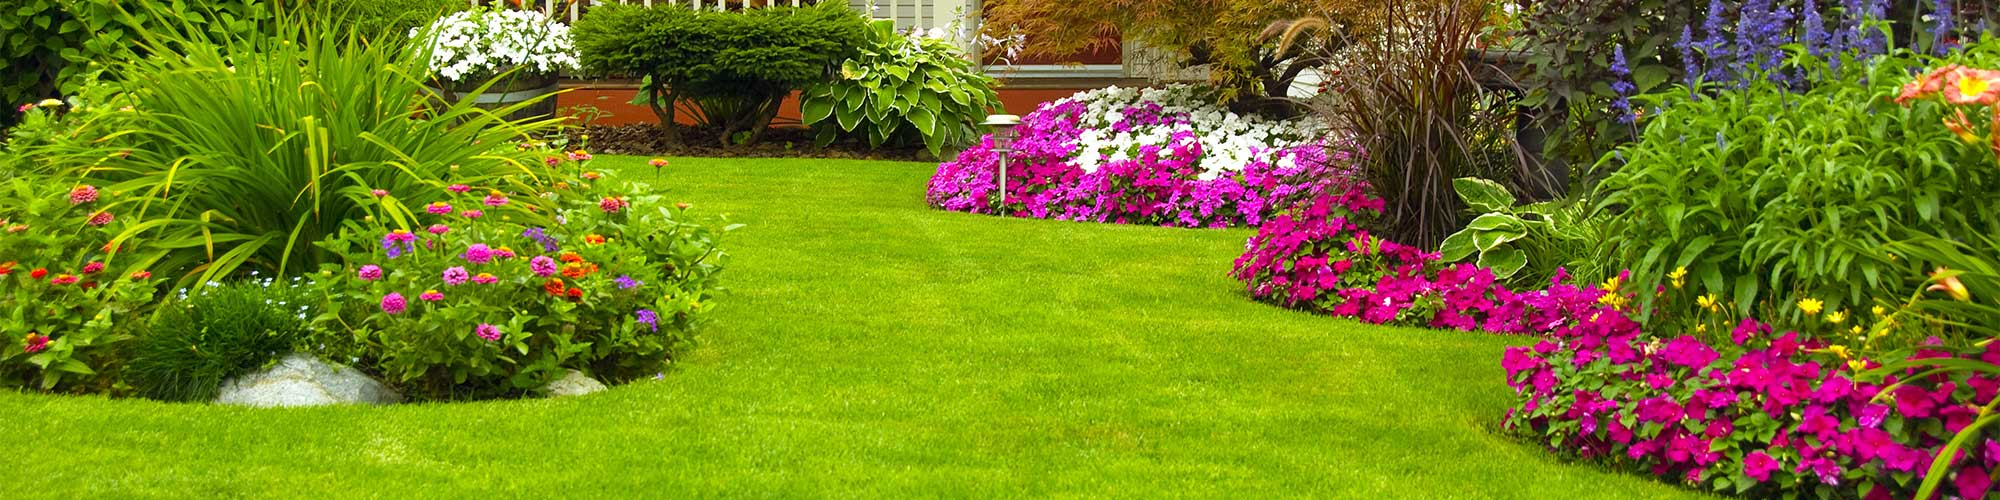 Landscaped Yard With Flowers and Bushes